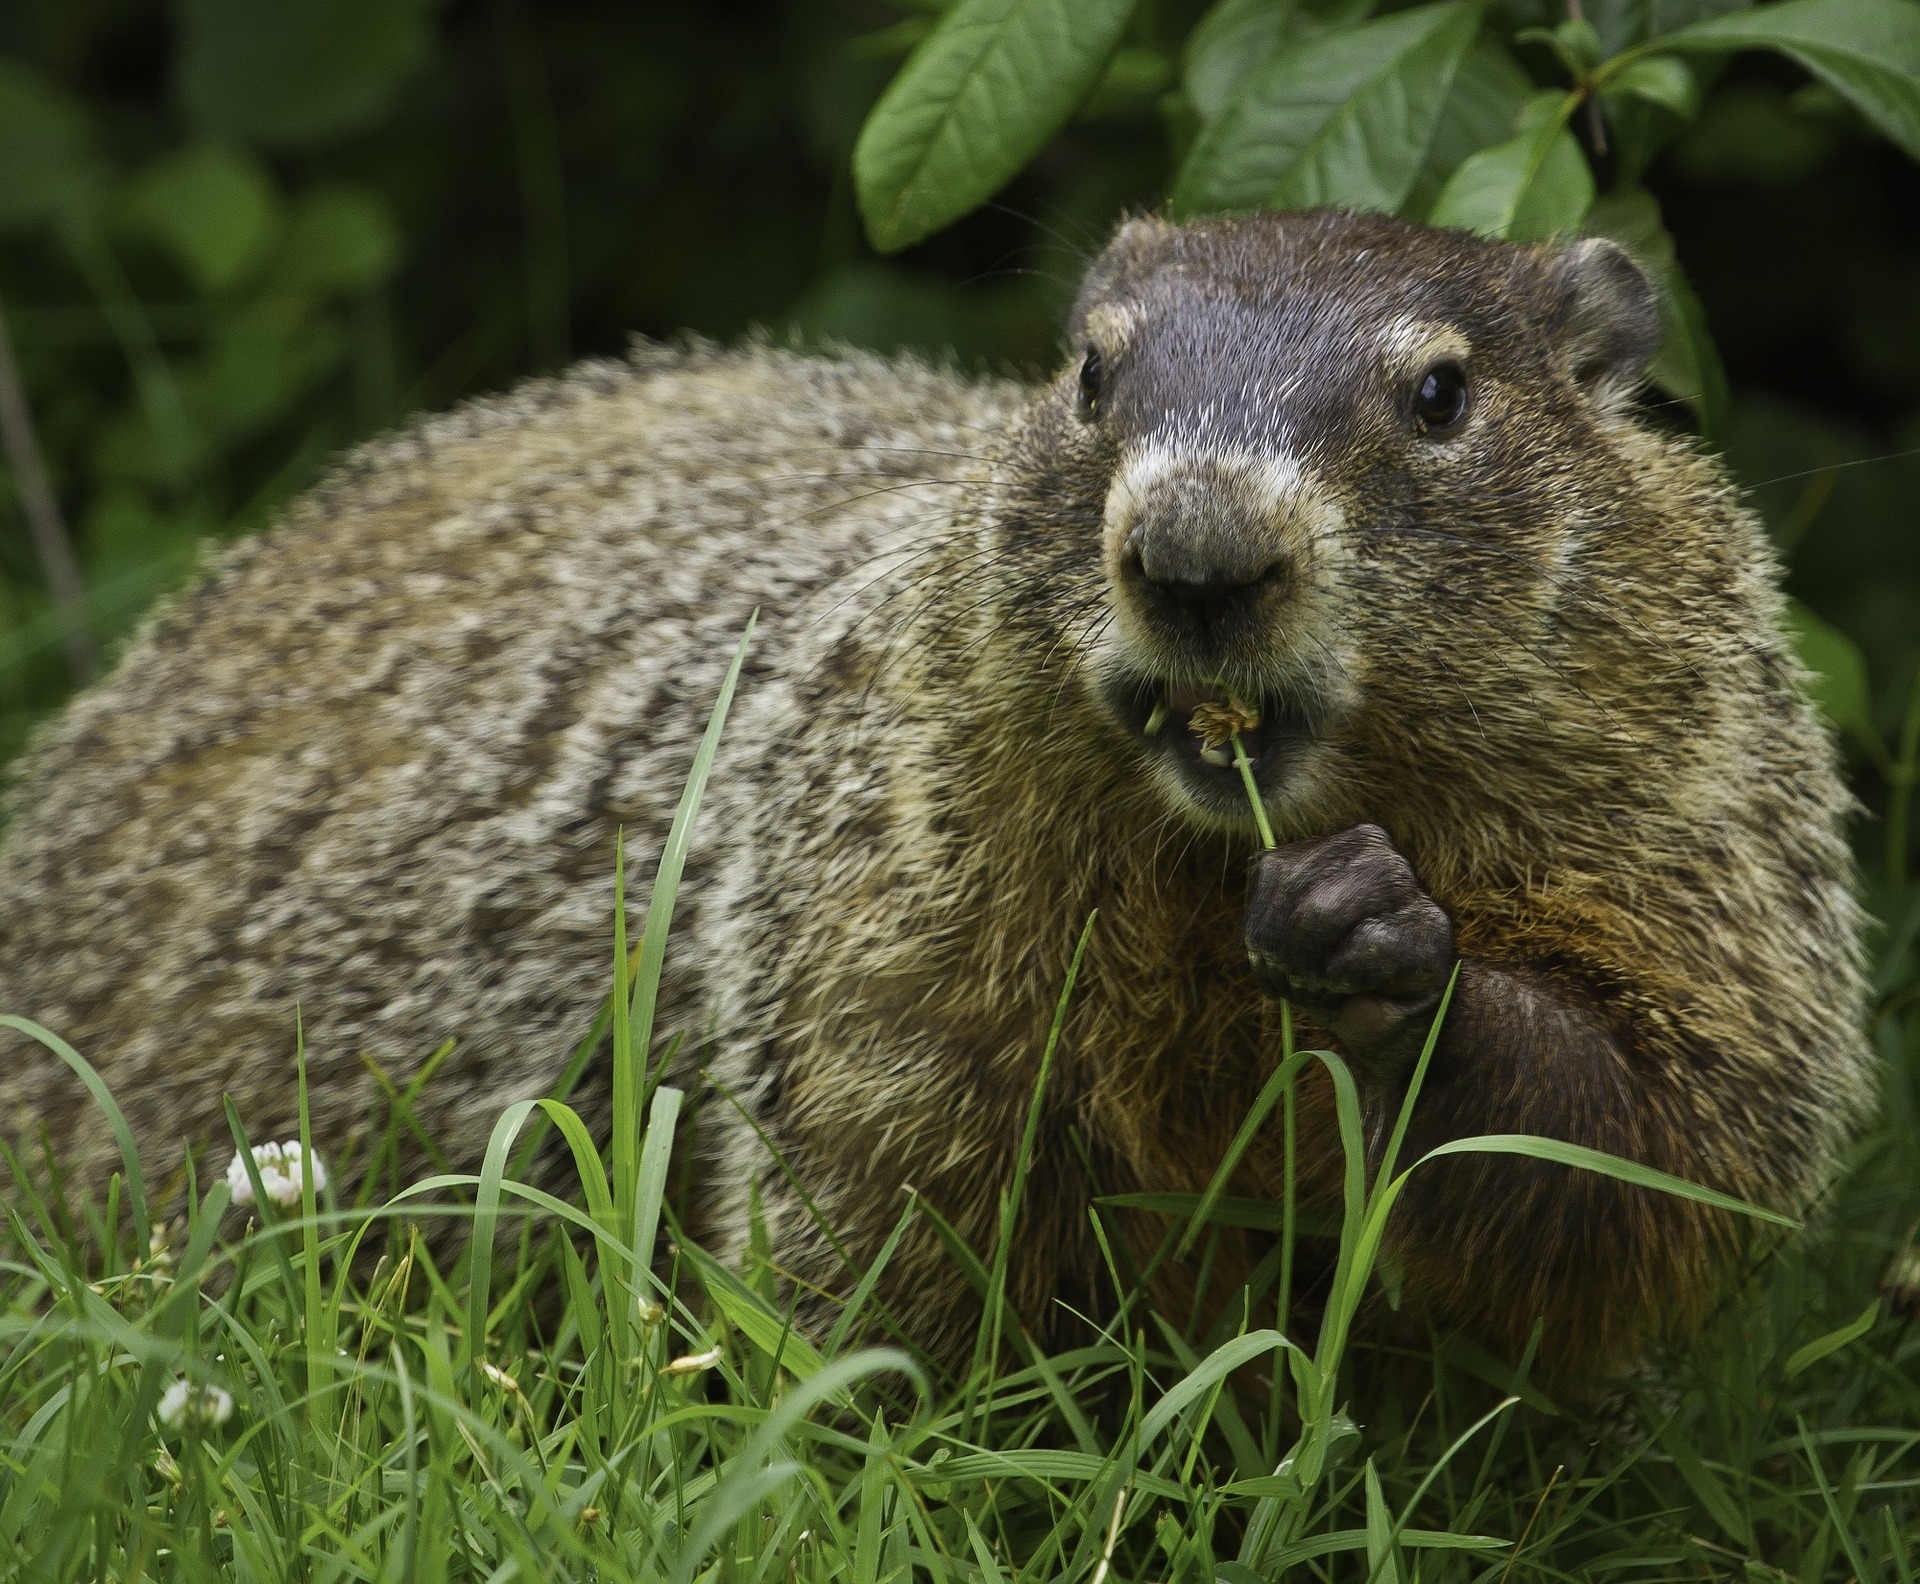 How to Clean and Skin a Groundhog (Woodchuck)